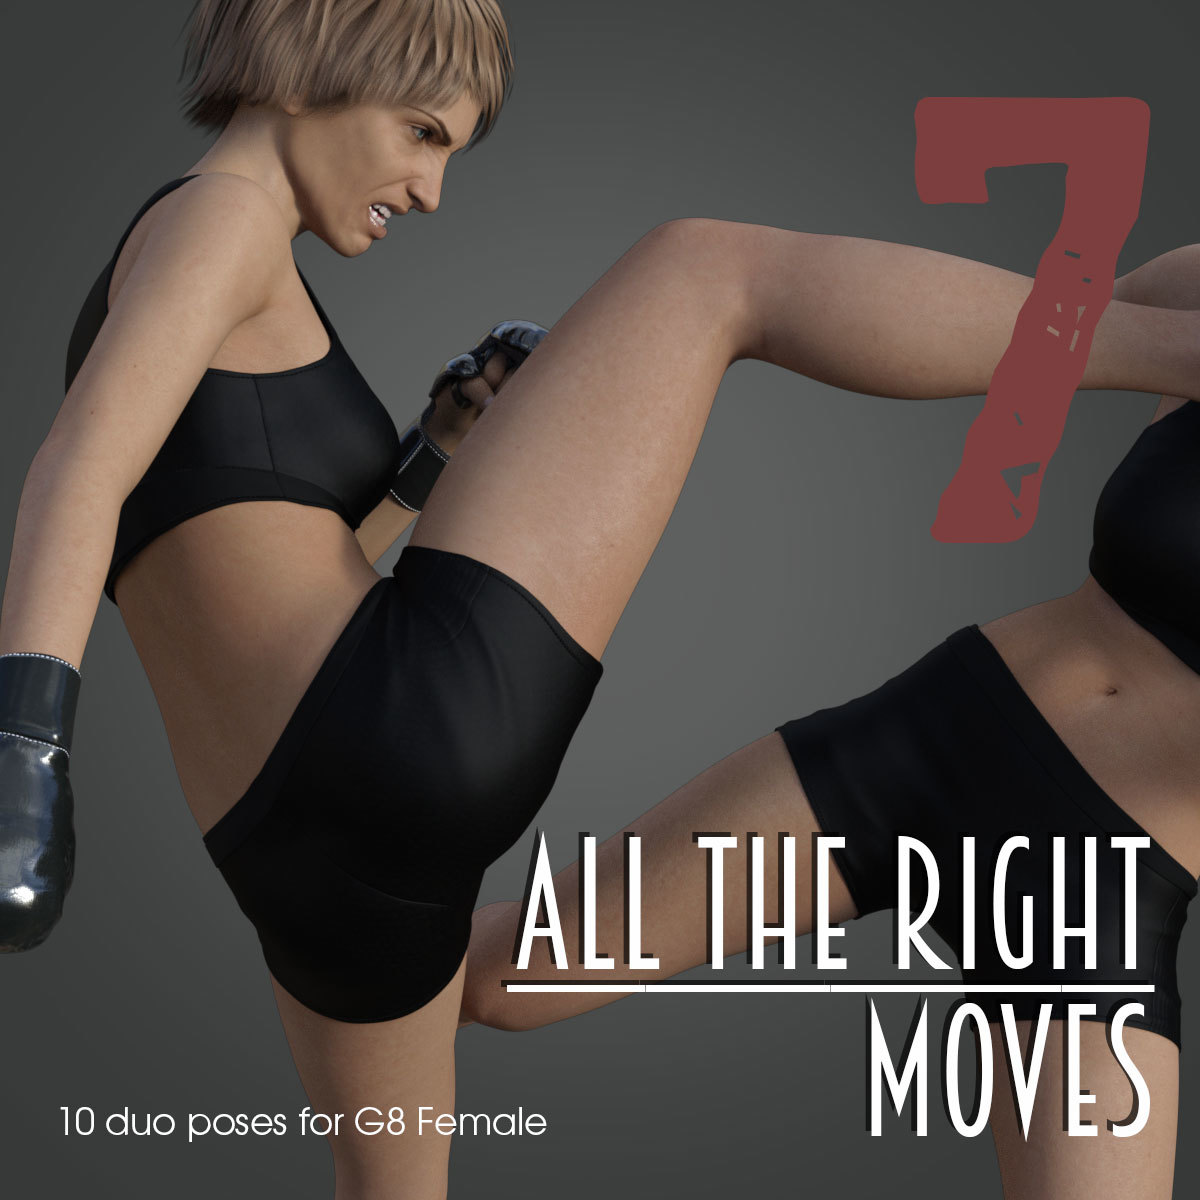 ALL THE RIGHT MOVES vol.7 for Genesis 8 Female by PainMD